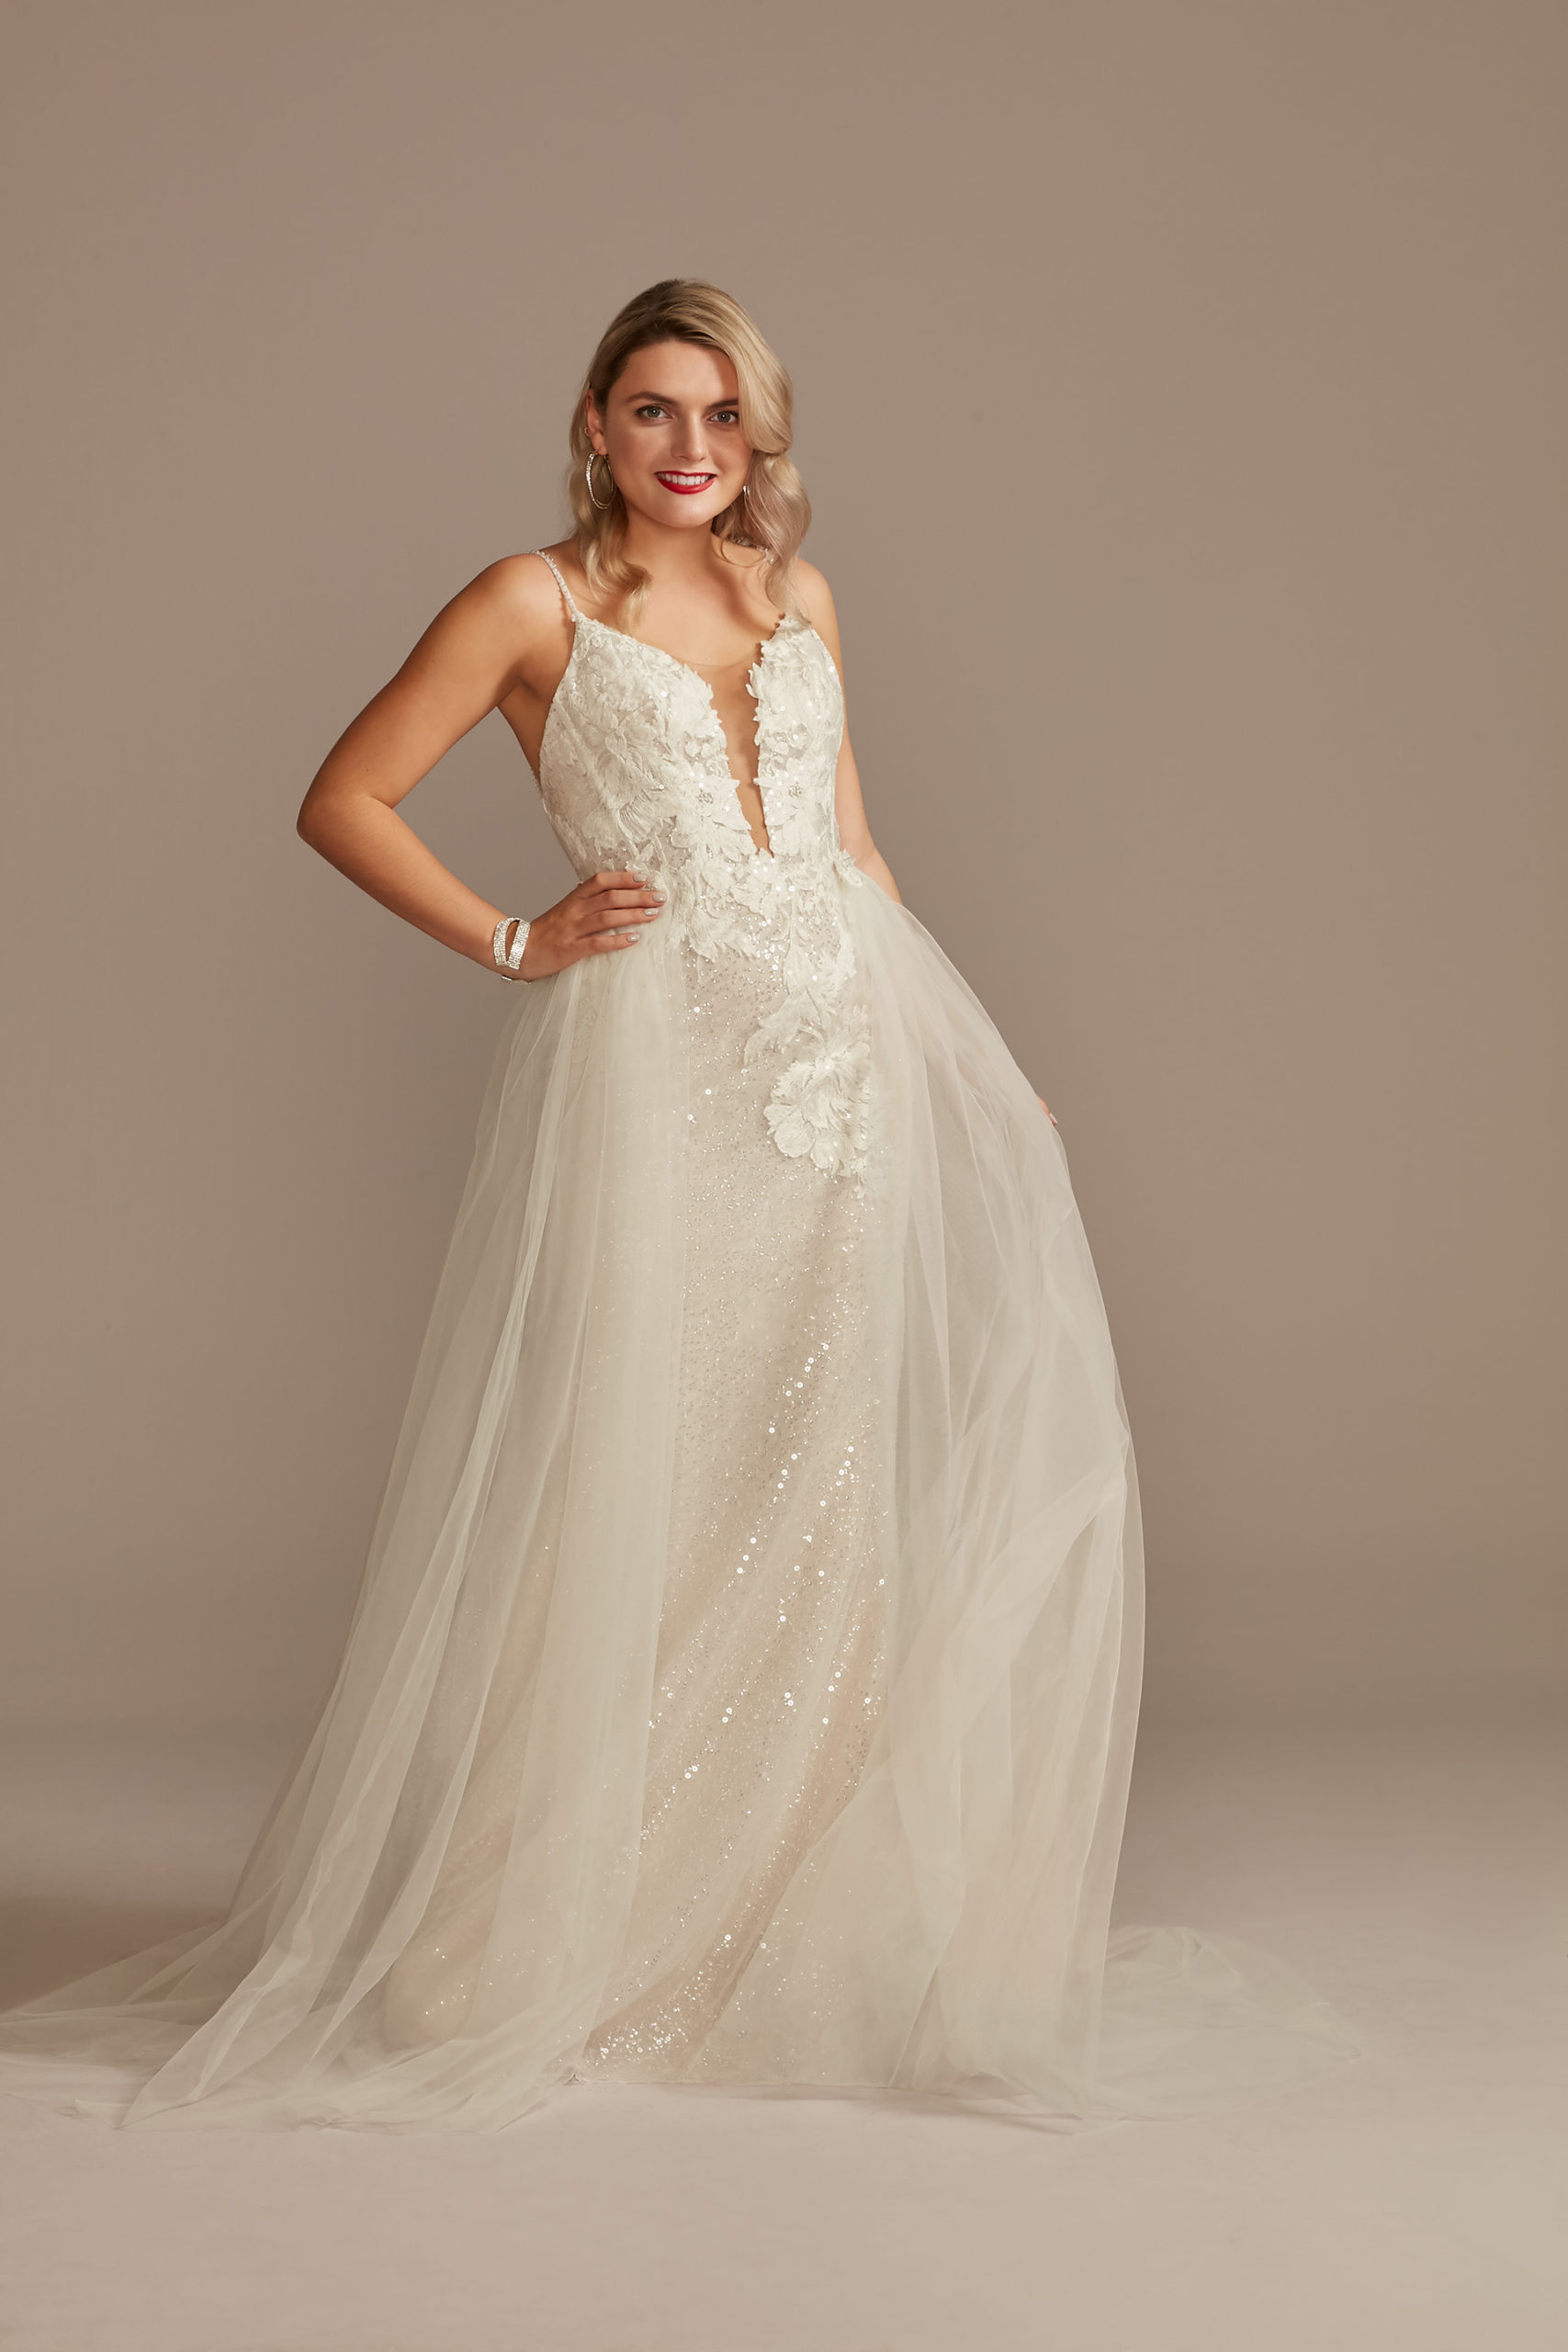 bride wearing Sequin Applique ethereal Wedding Dress with Removable Train